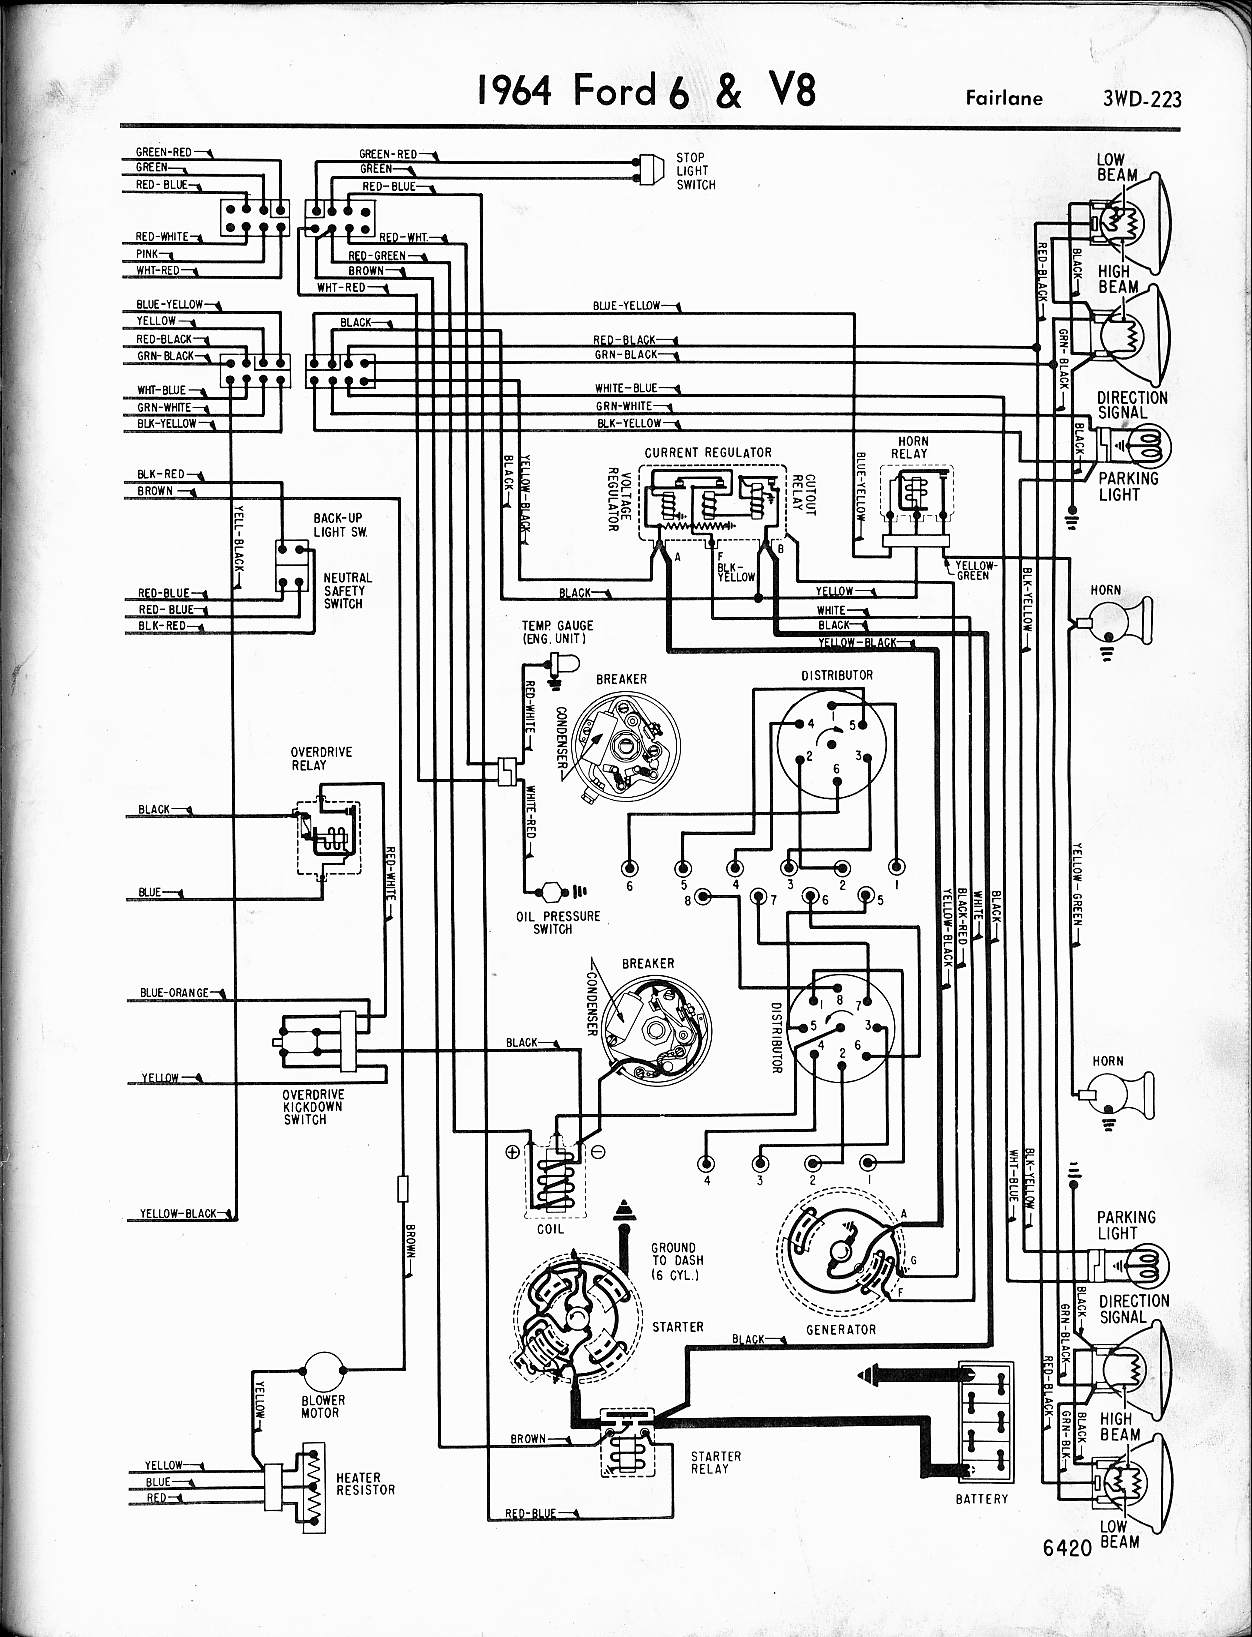 MWire5765 223 57 65 ford wiring diagrams 1964 ford fairlane wiring diagram at panicattacktreatment.co